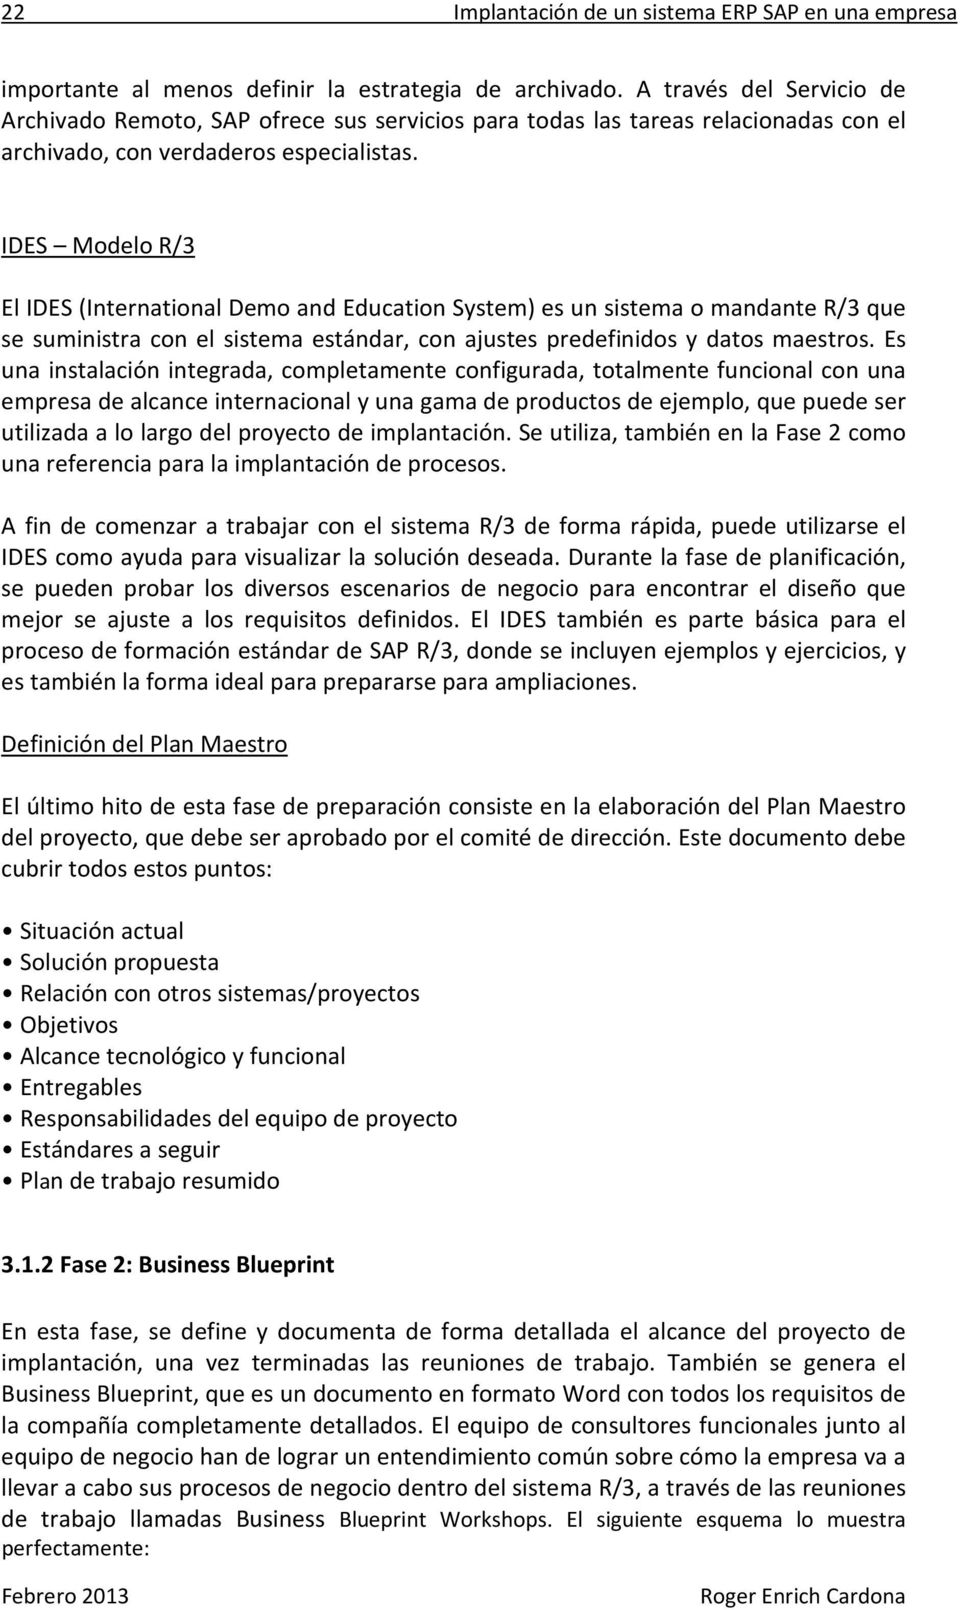 Implantacin de un sistema erp sap en una empresa pdf ides modelo r3 el ides international demo and education system es un malvernweather Choice Image